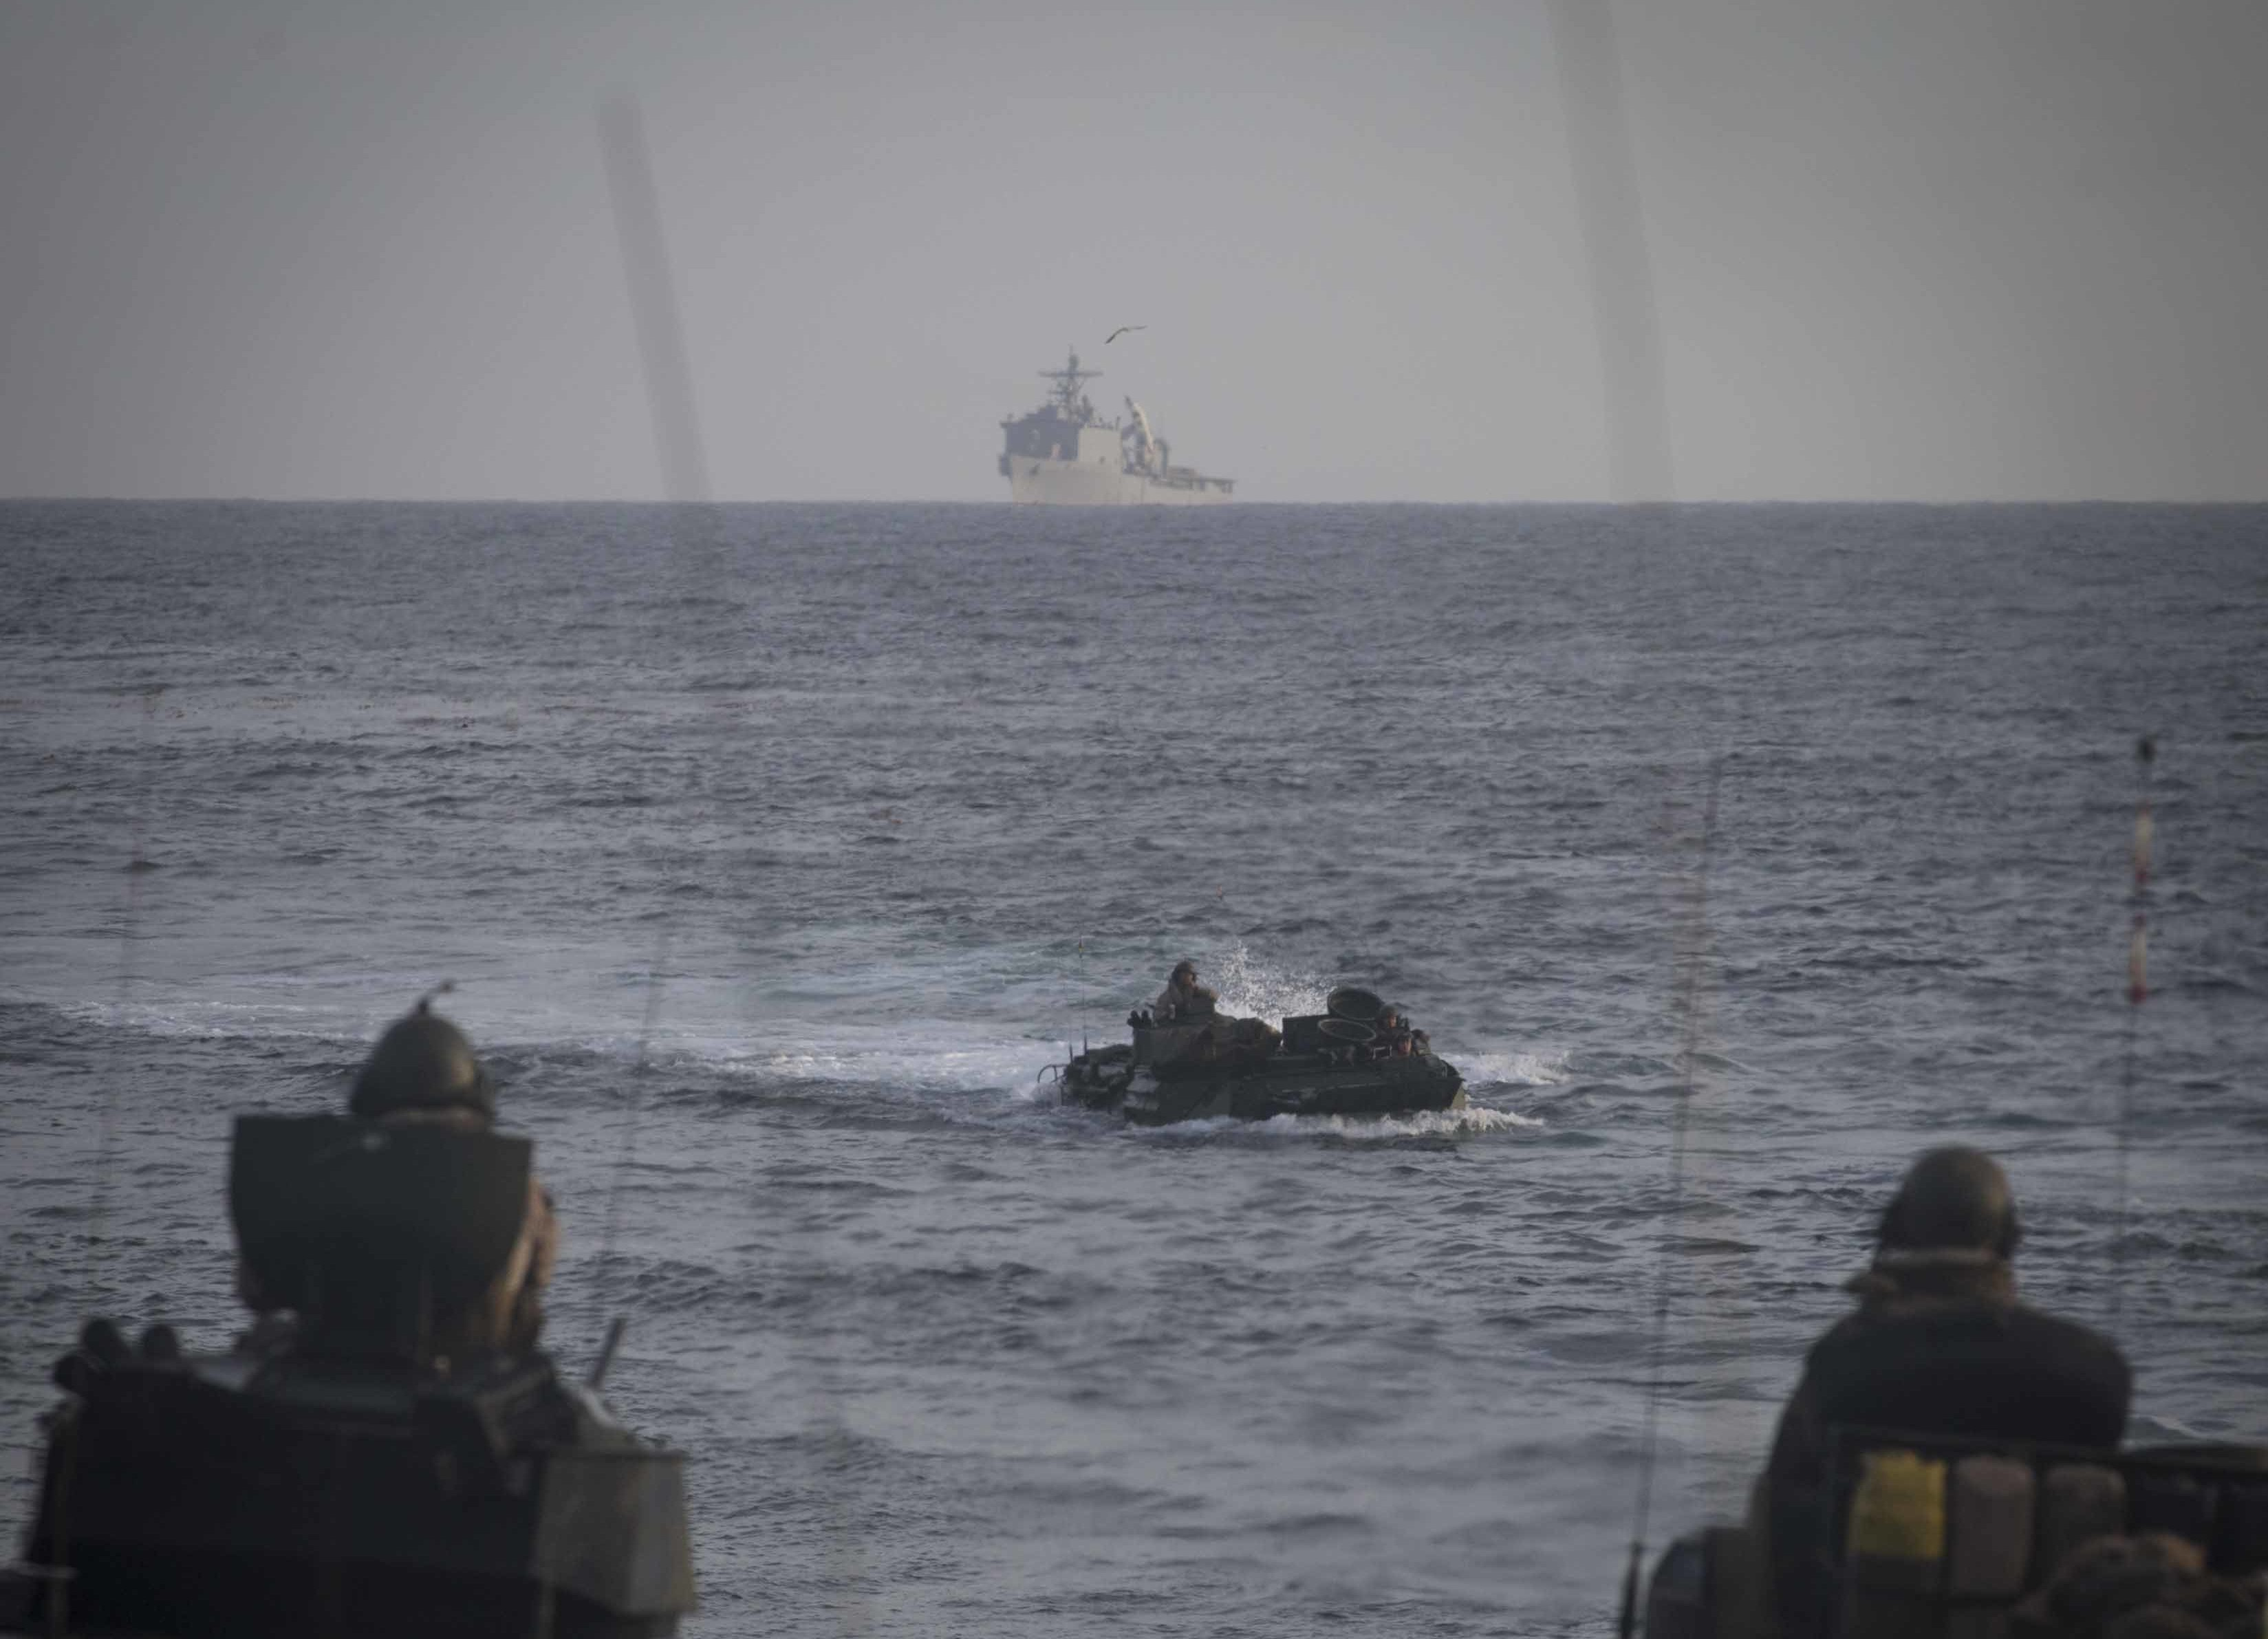 Naval Exercise Series Continues Push to Find Solutions for